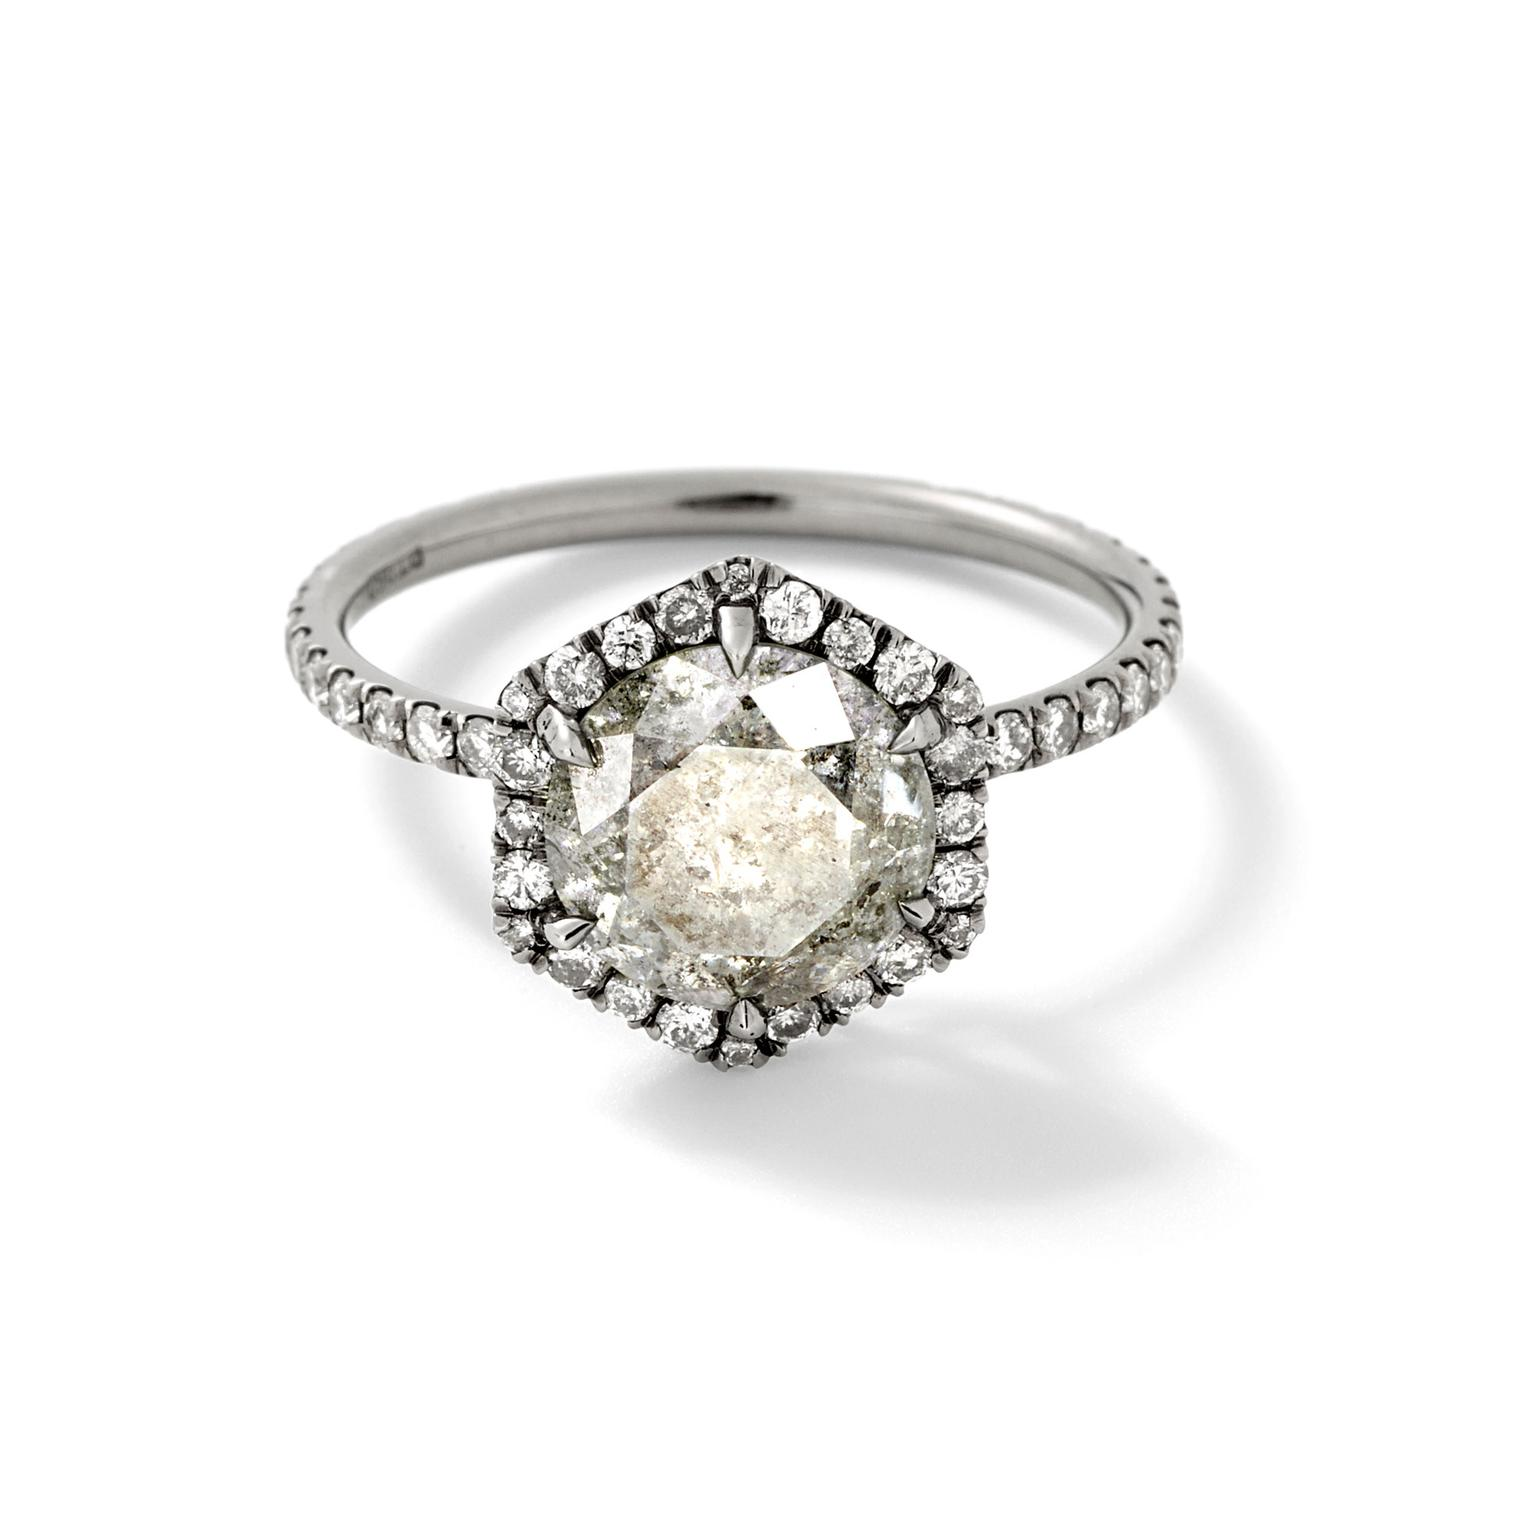 Eva Fehren Premier grey diamond ring